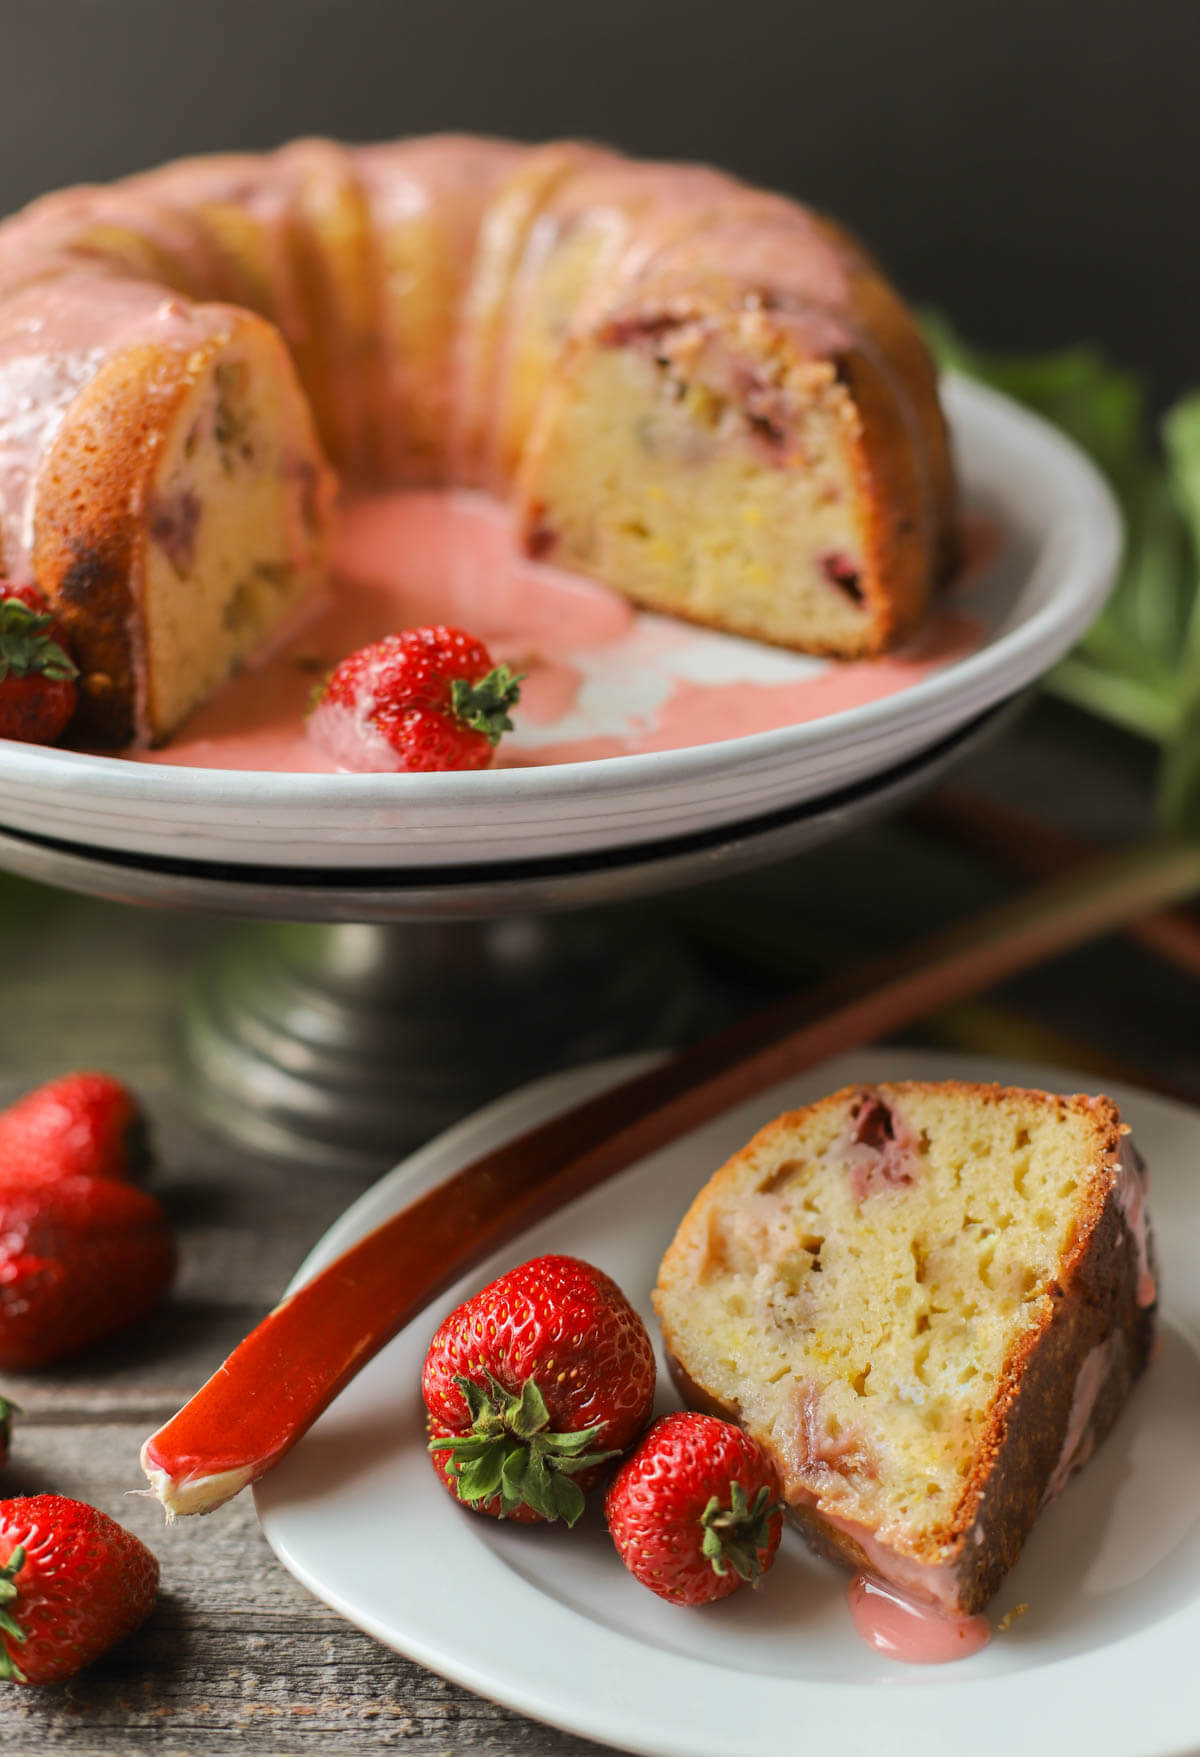 A slice of strawberry rhubarb Greek yogurt cake with the full cake in the background.